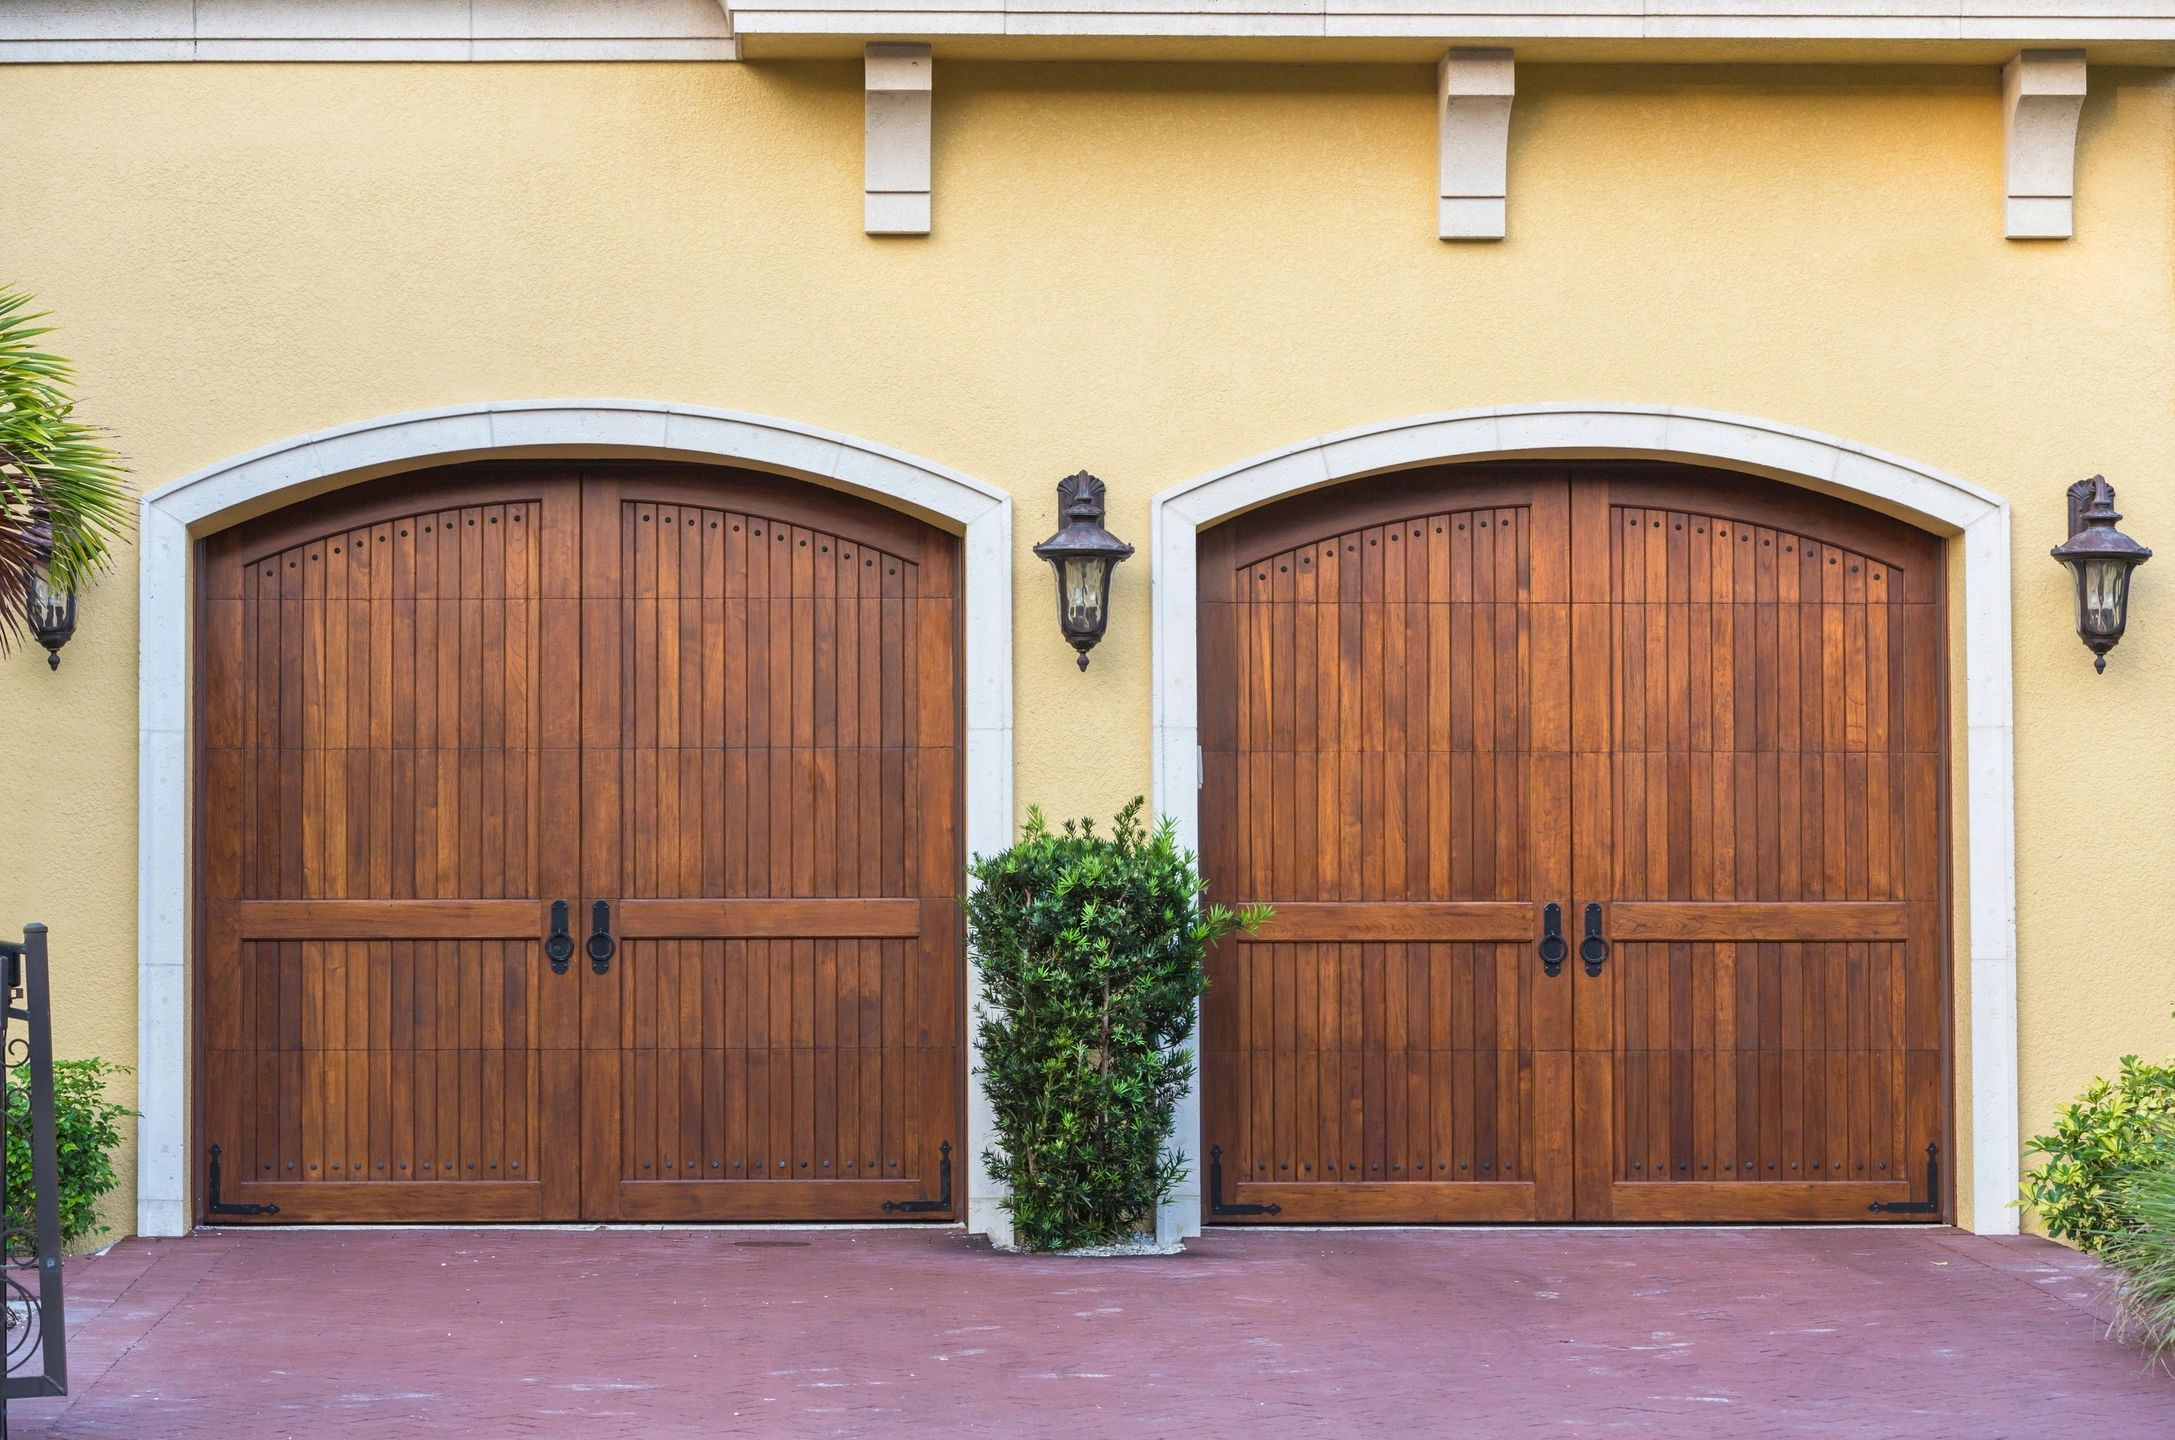 Are You Searching For Garage Door Services Our Experienced